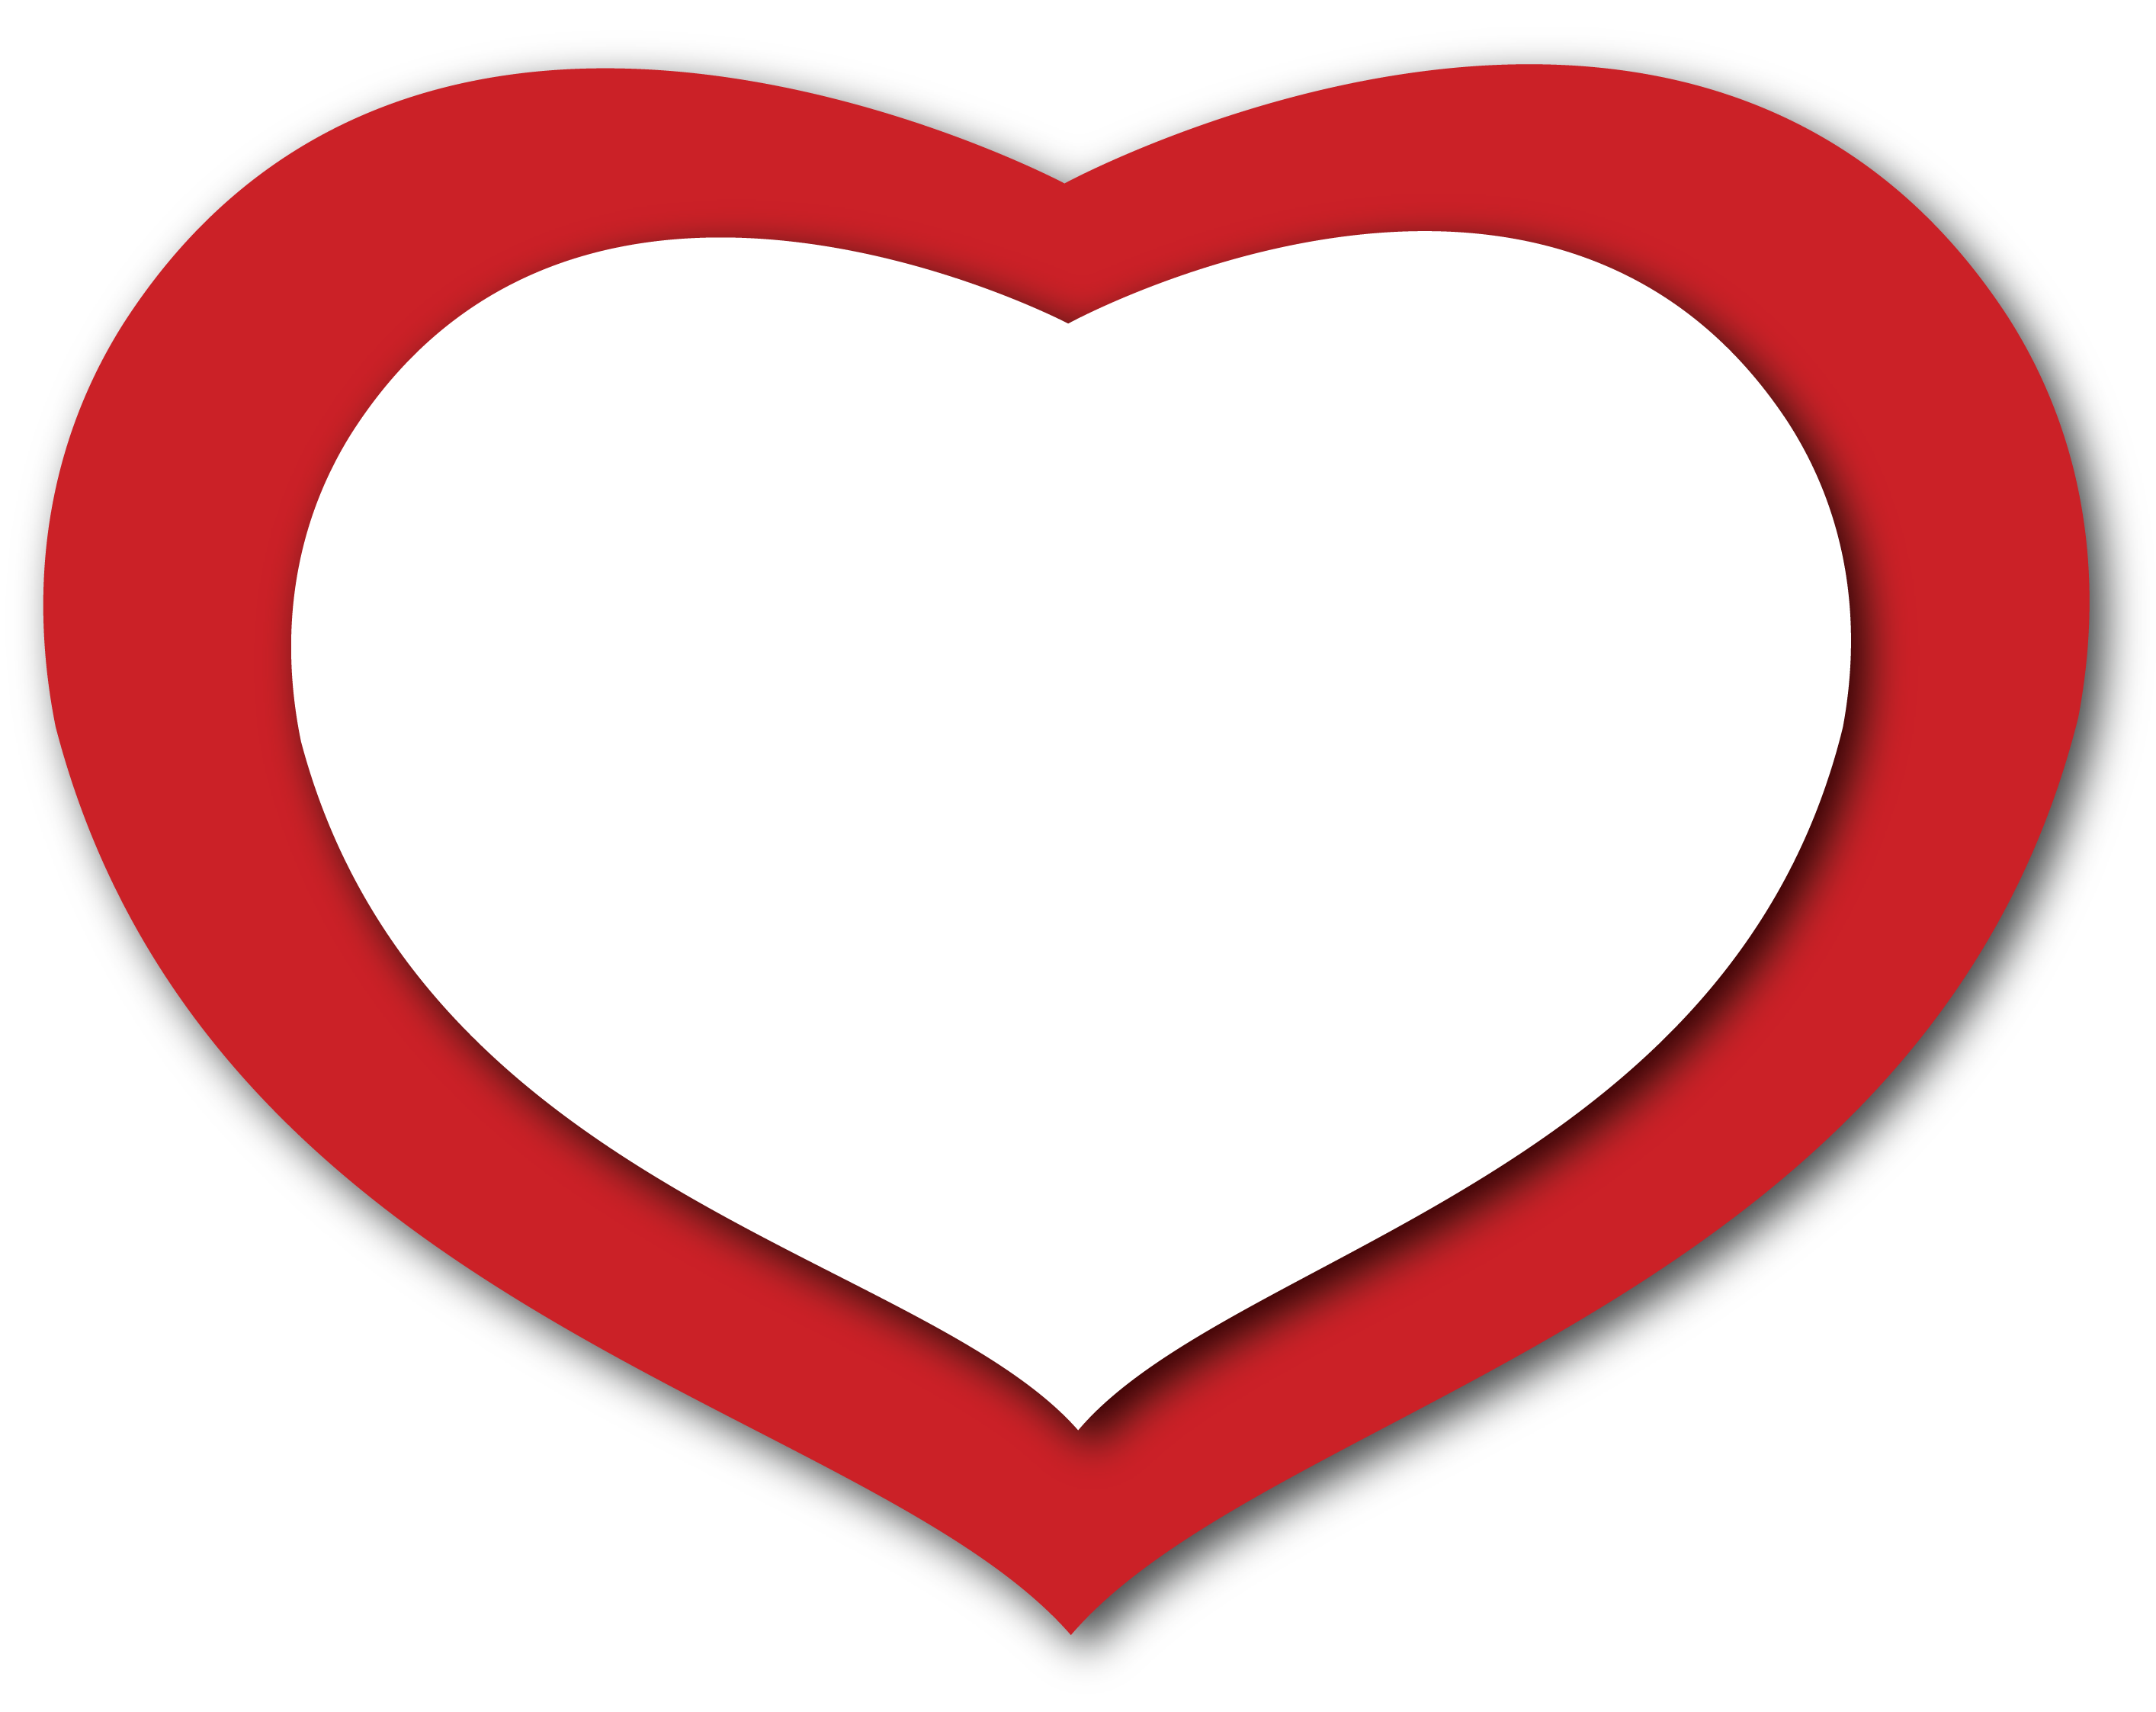 Free picture of red. Hearts clipart outline